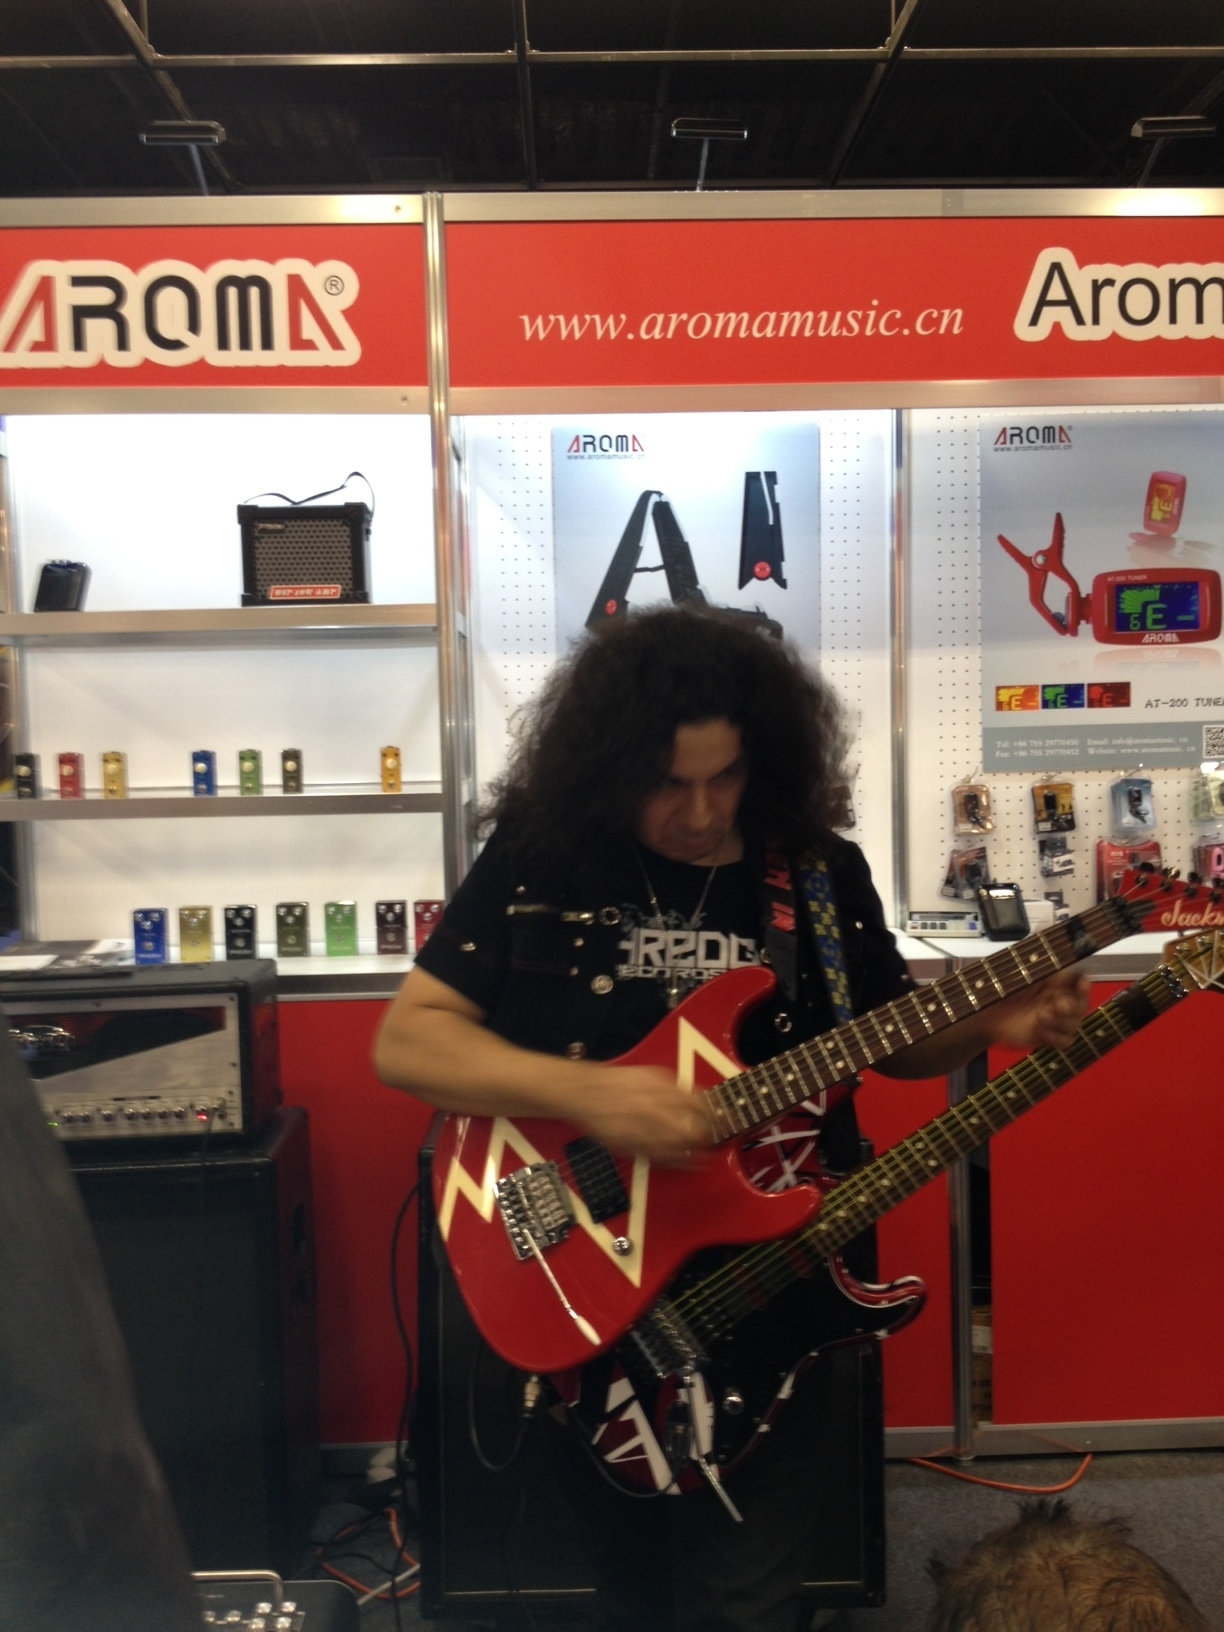 Guitarist Mike Guerrero Guitar tapping ninja plays shred guitar at namm show